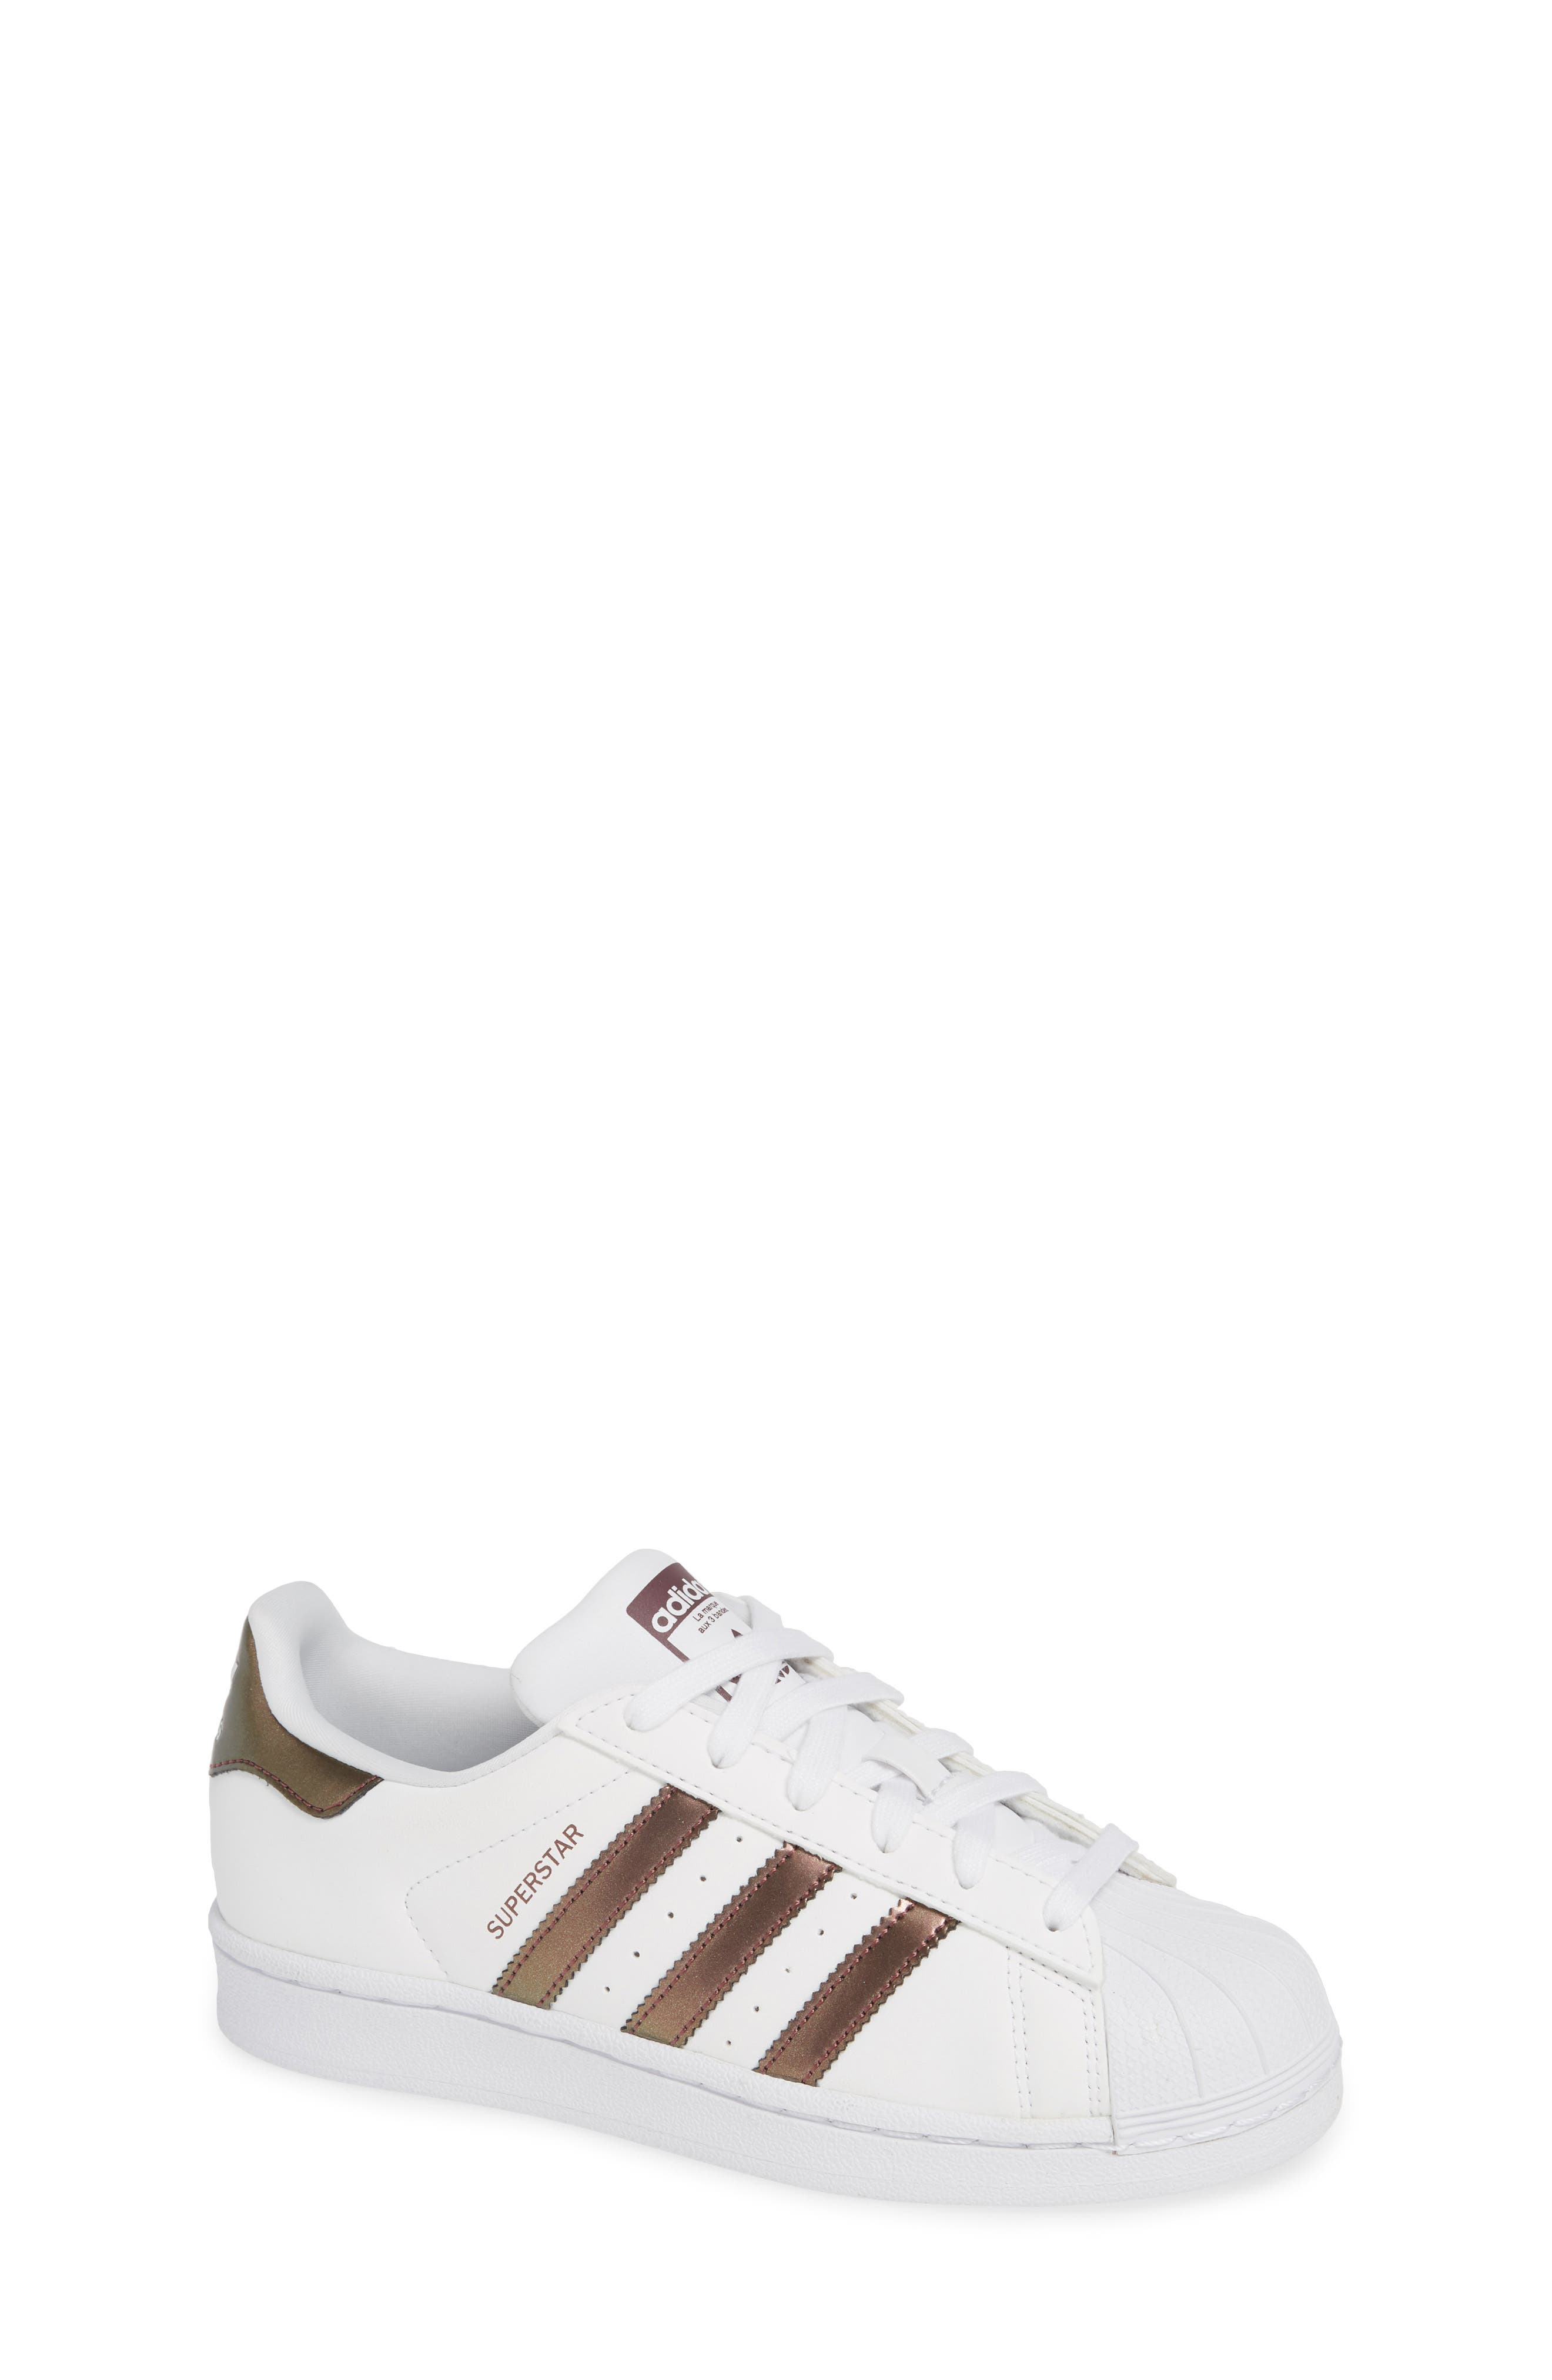 'Superstar II' Sneaker,                             Main thumbnail 1, color,                             FOOTWEAR WHITE/COPPER